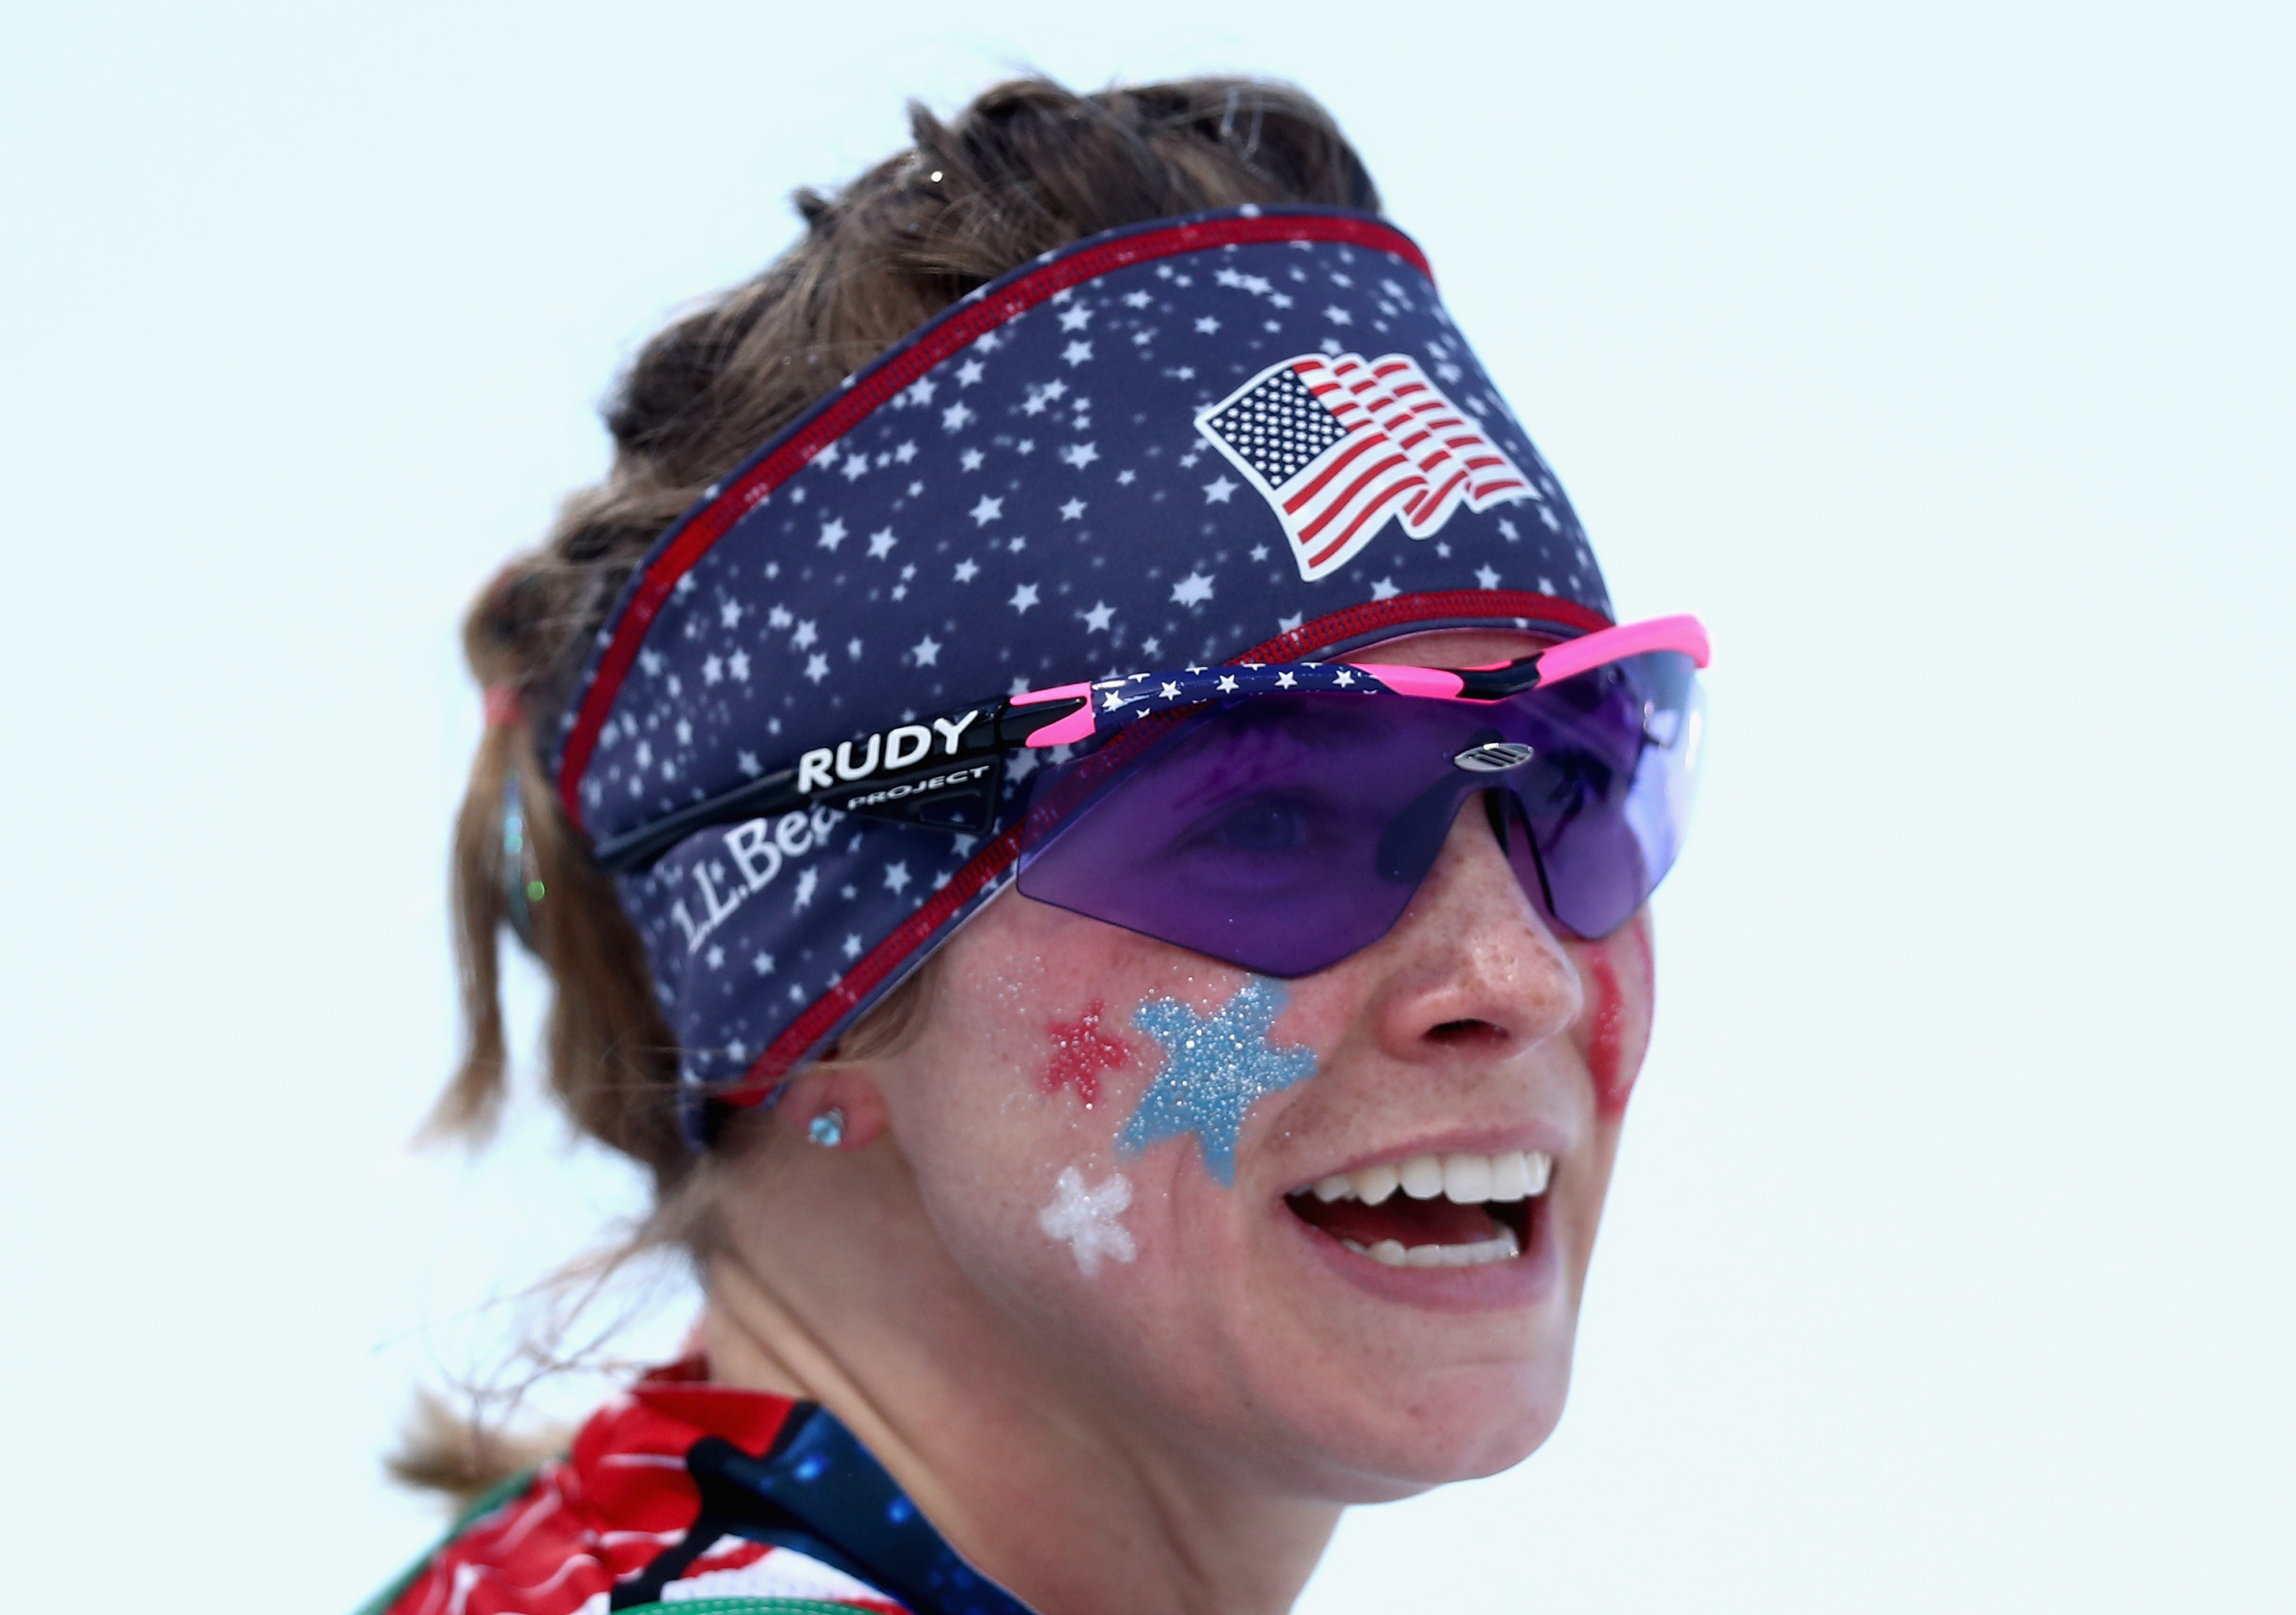 Jesse Diggins named Team USA flag bearer for PyeongChang closing ceremonies